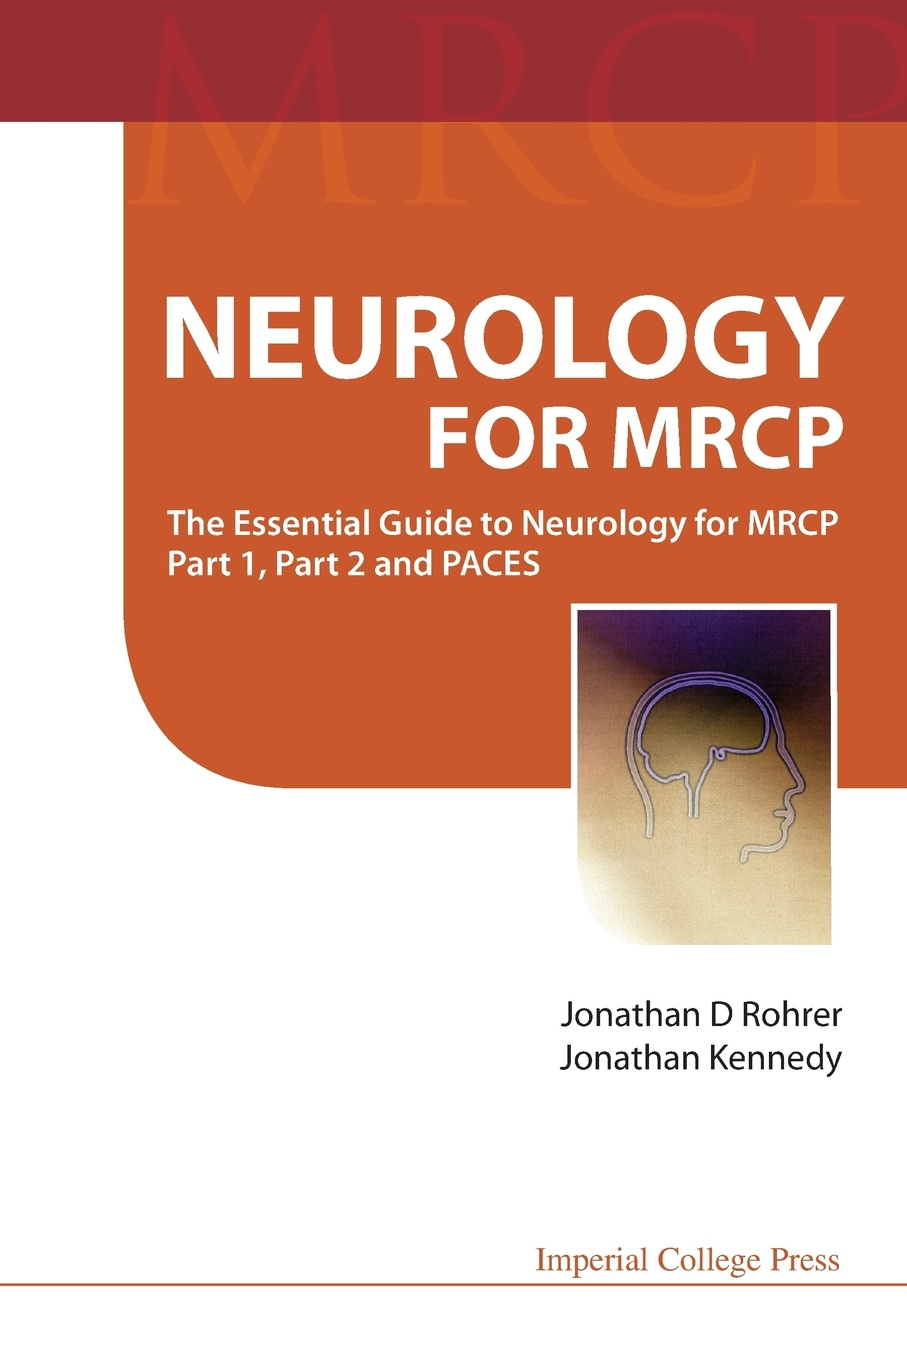 JONATHAN D ROHRER, JONATHAN KENNEDY NEUROLOGY FOR MRCP. THE ESSENTIAL GUIDE TO NEUROLOGY FOR MRCP PART 1, PART 2 AND PACES